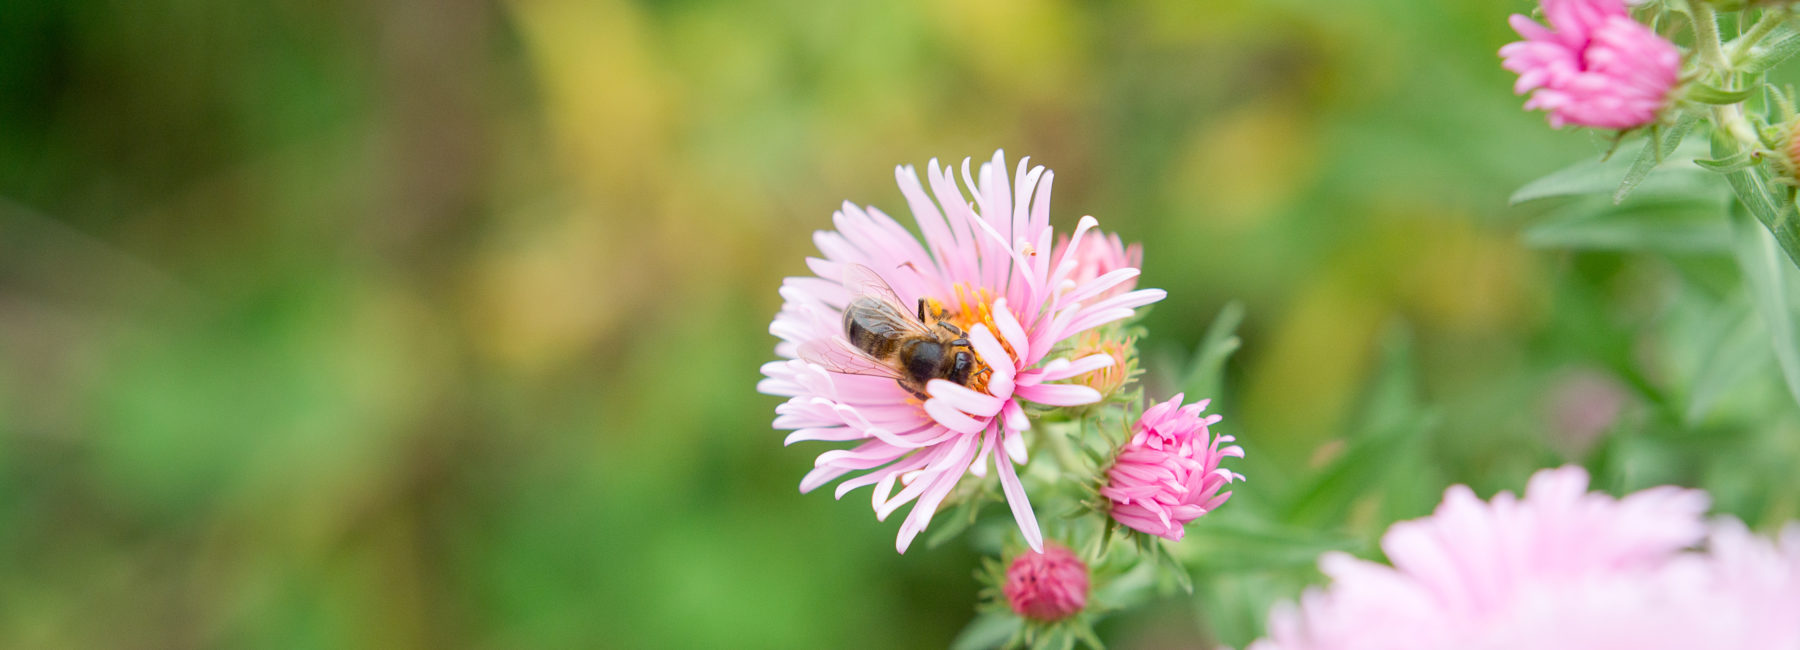 A bee sitting in a pink flower, with a background of green